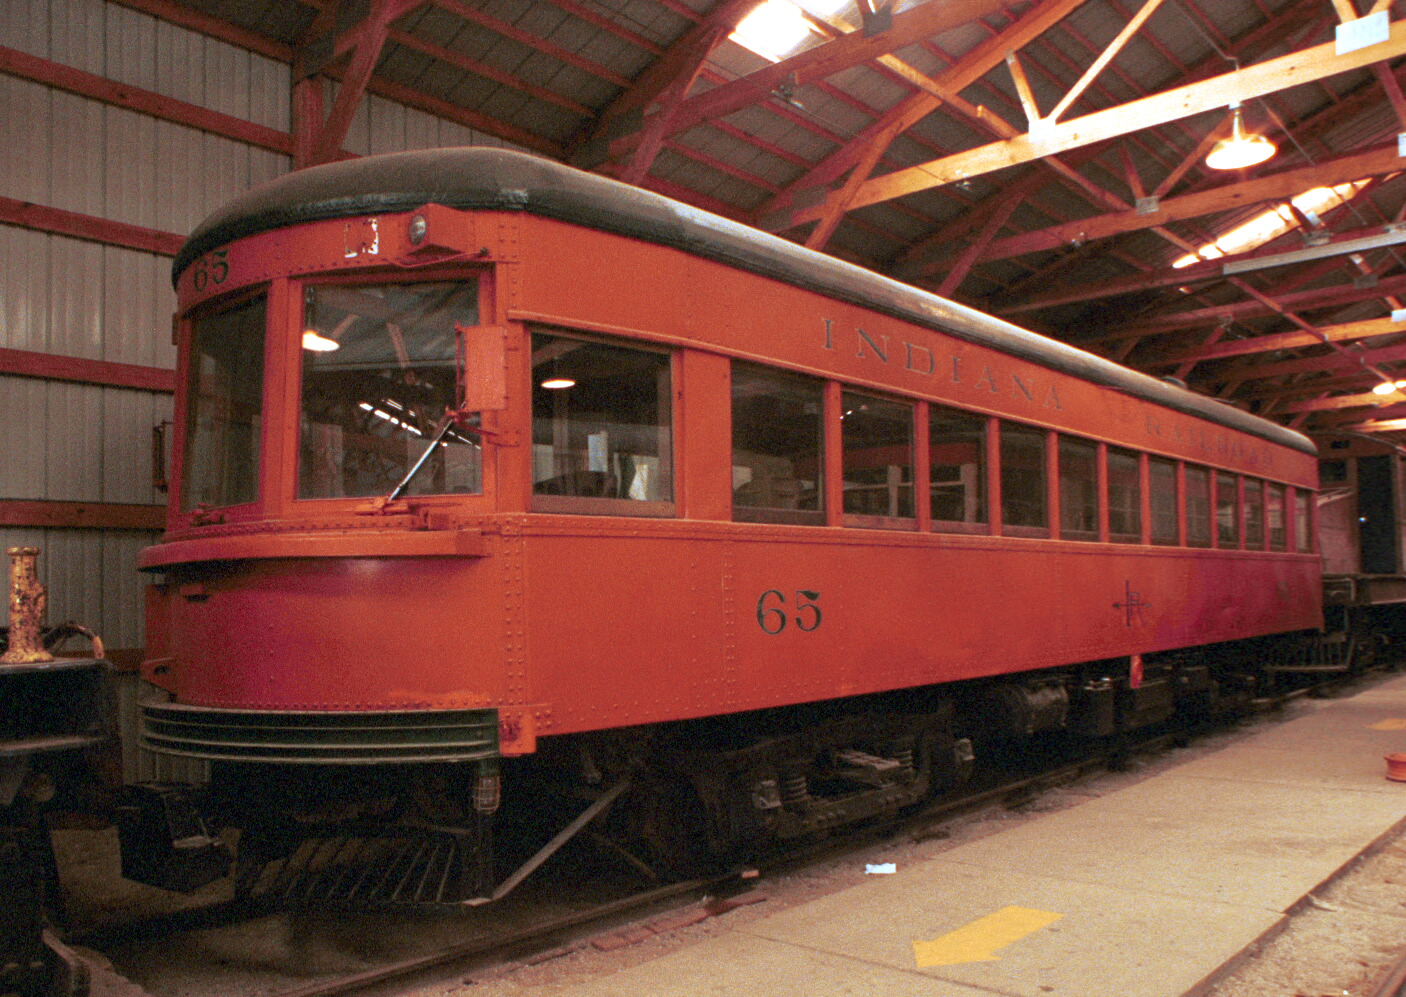 Indiana Railway #65 was the car that started the Illinois Railway Museum. Image taken in one of the IRM's display barns with available light.Kodacolor 35mm film (probably 400ASA), 21mm lens.